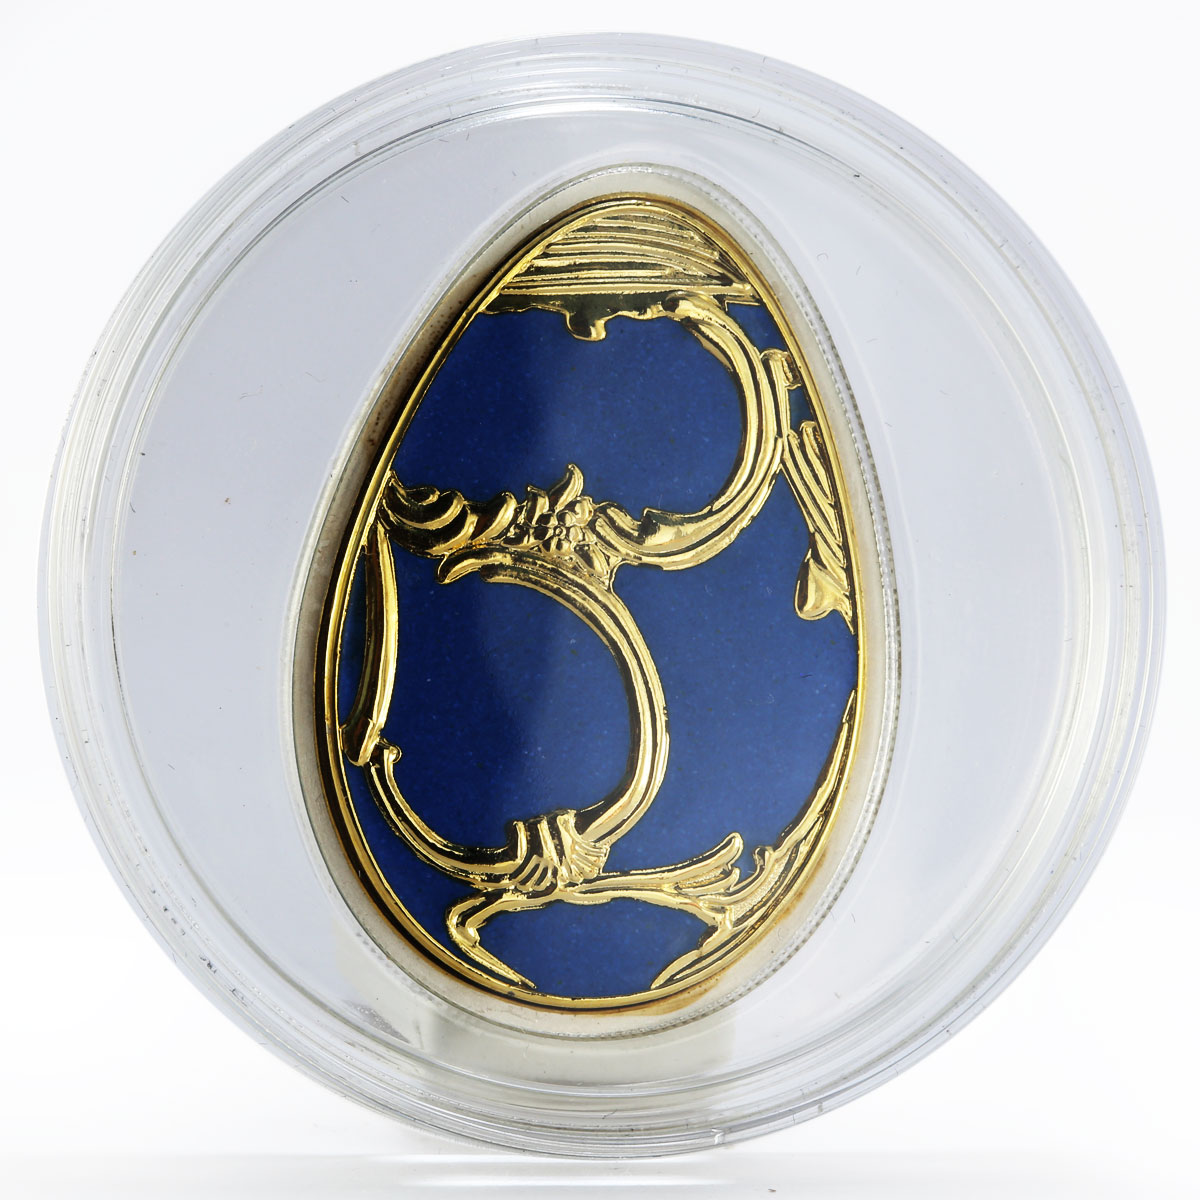 Cook Islands 5 dollars Imperial Eggs in Cloisonne Egg in Blue silver 2010